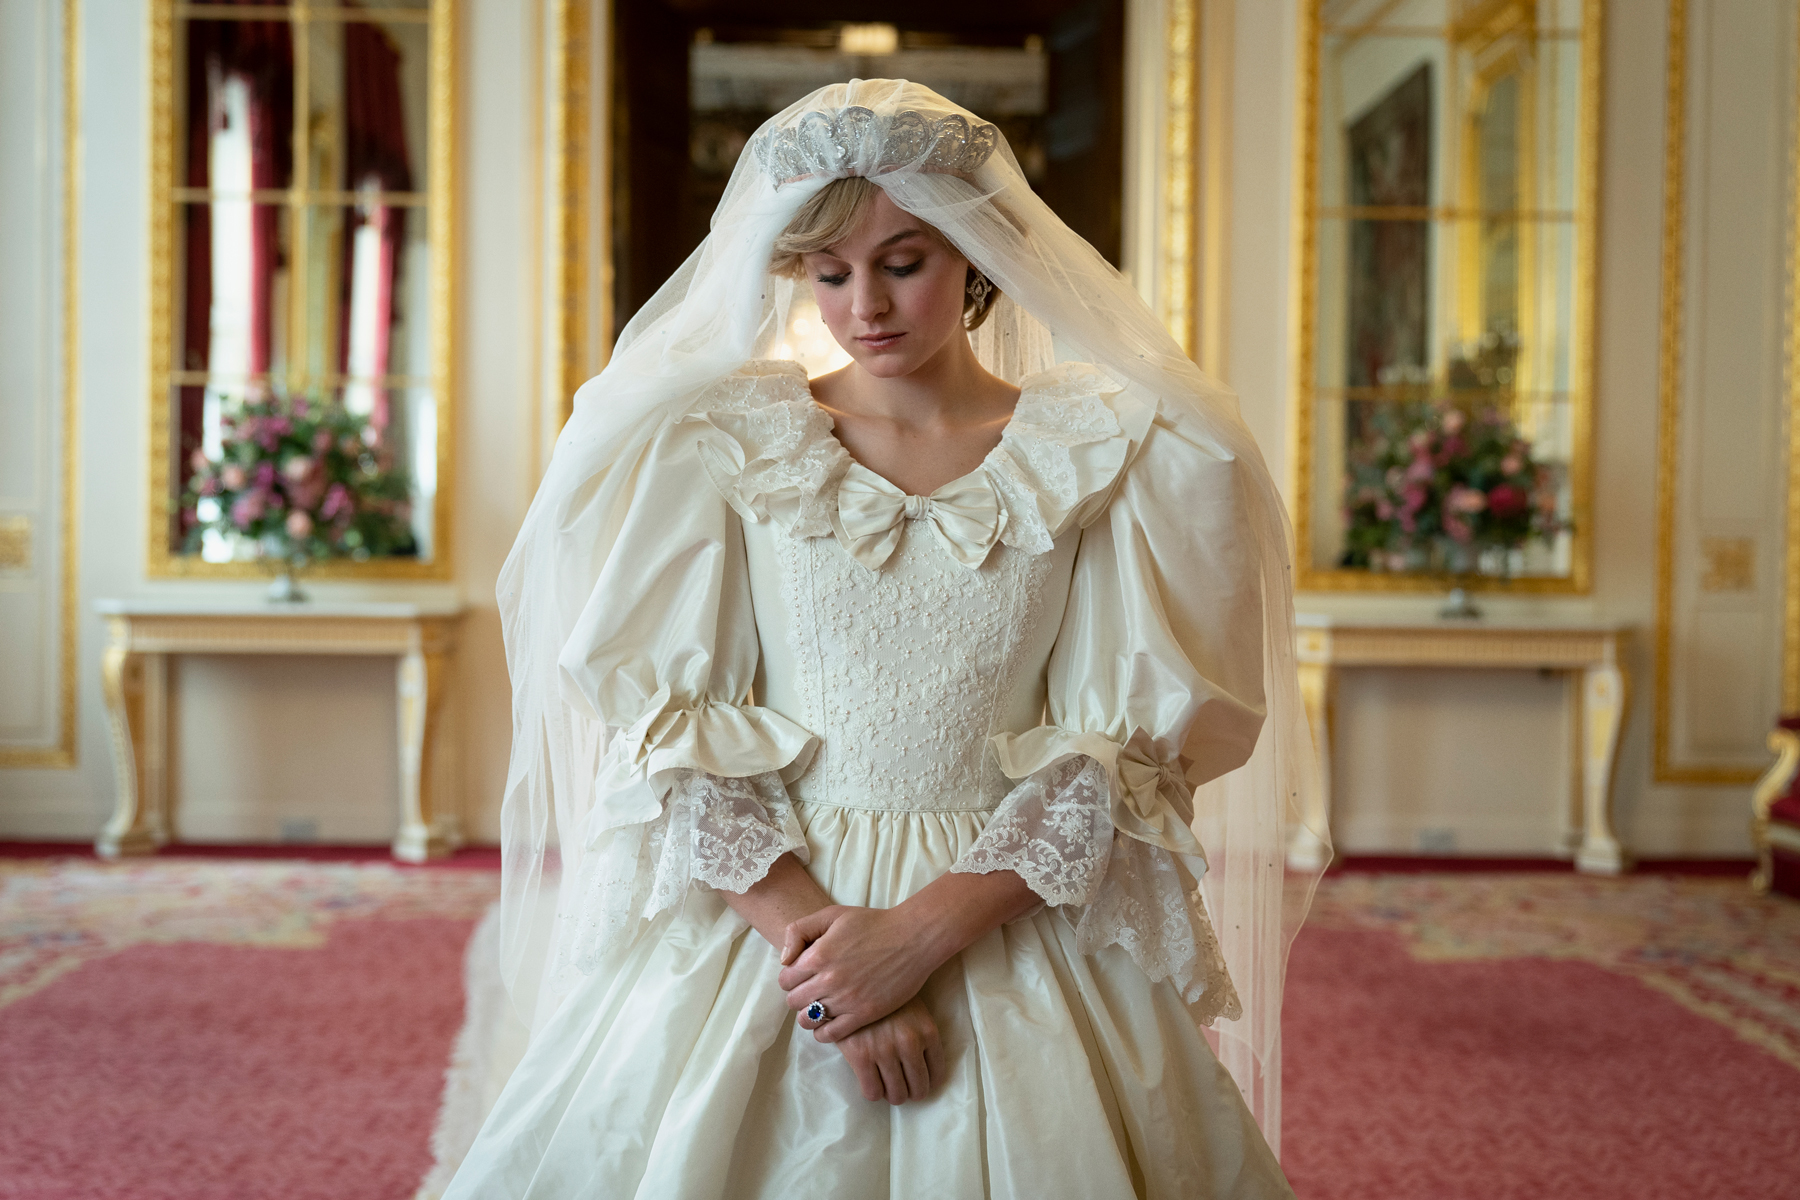 The Crown S4. Picture shows: Princess Diana (EMMA CORRIN) in wedding gown